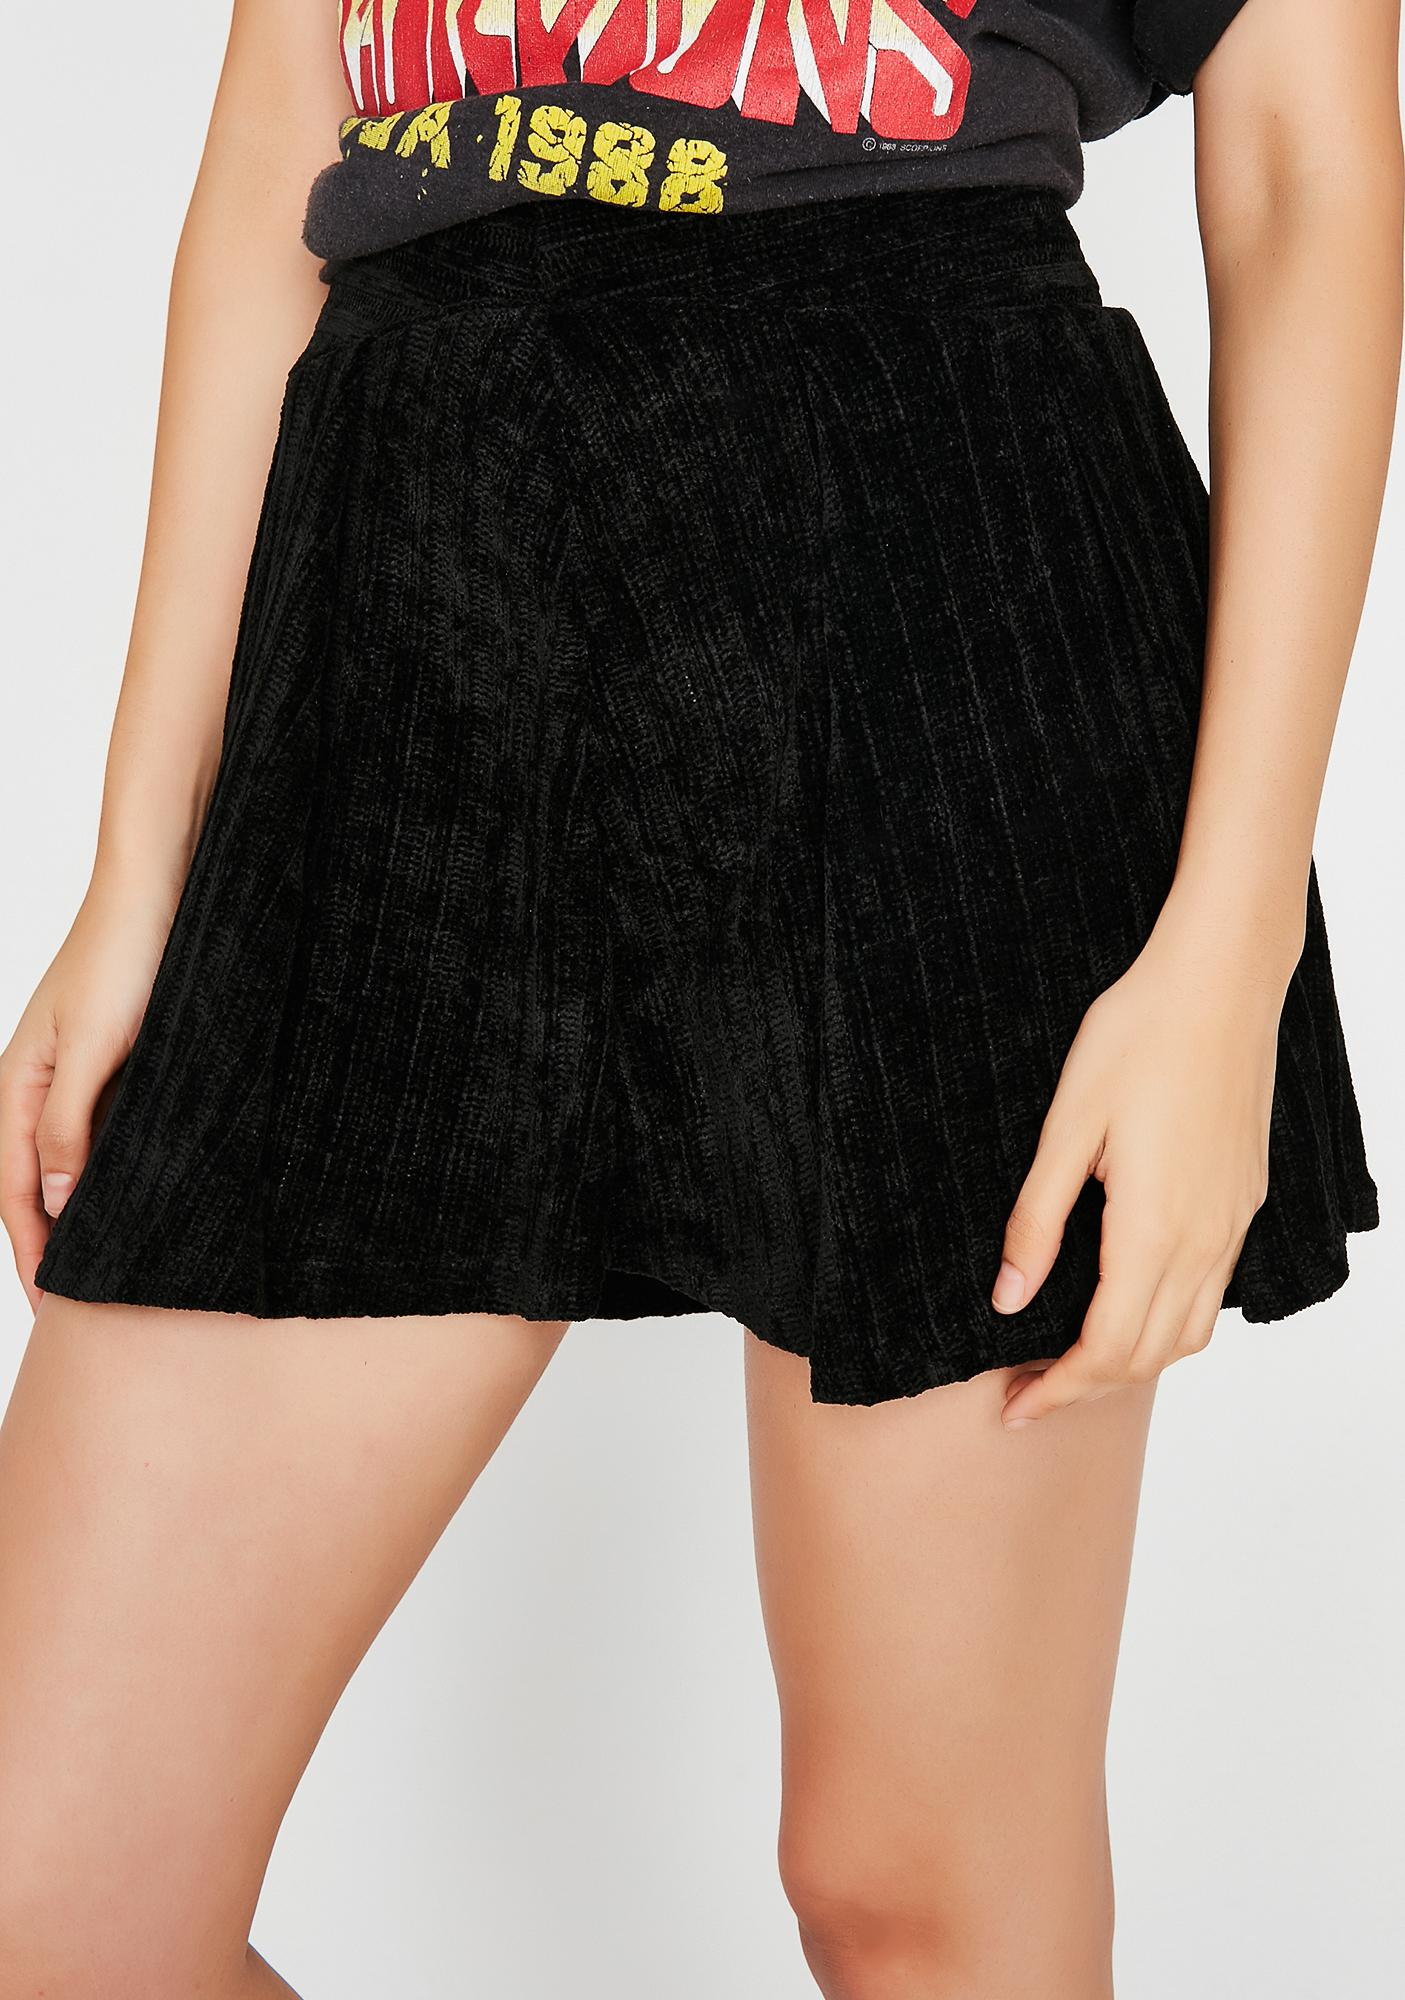 Crave You Mini Skirt